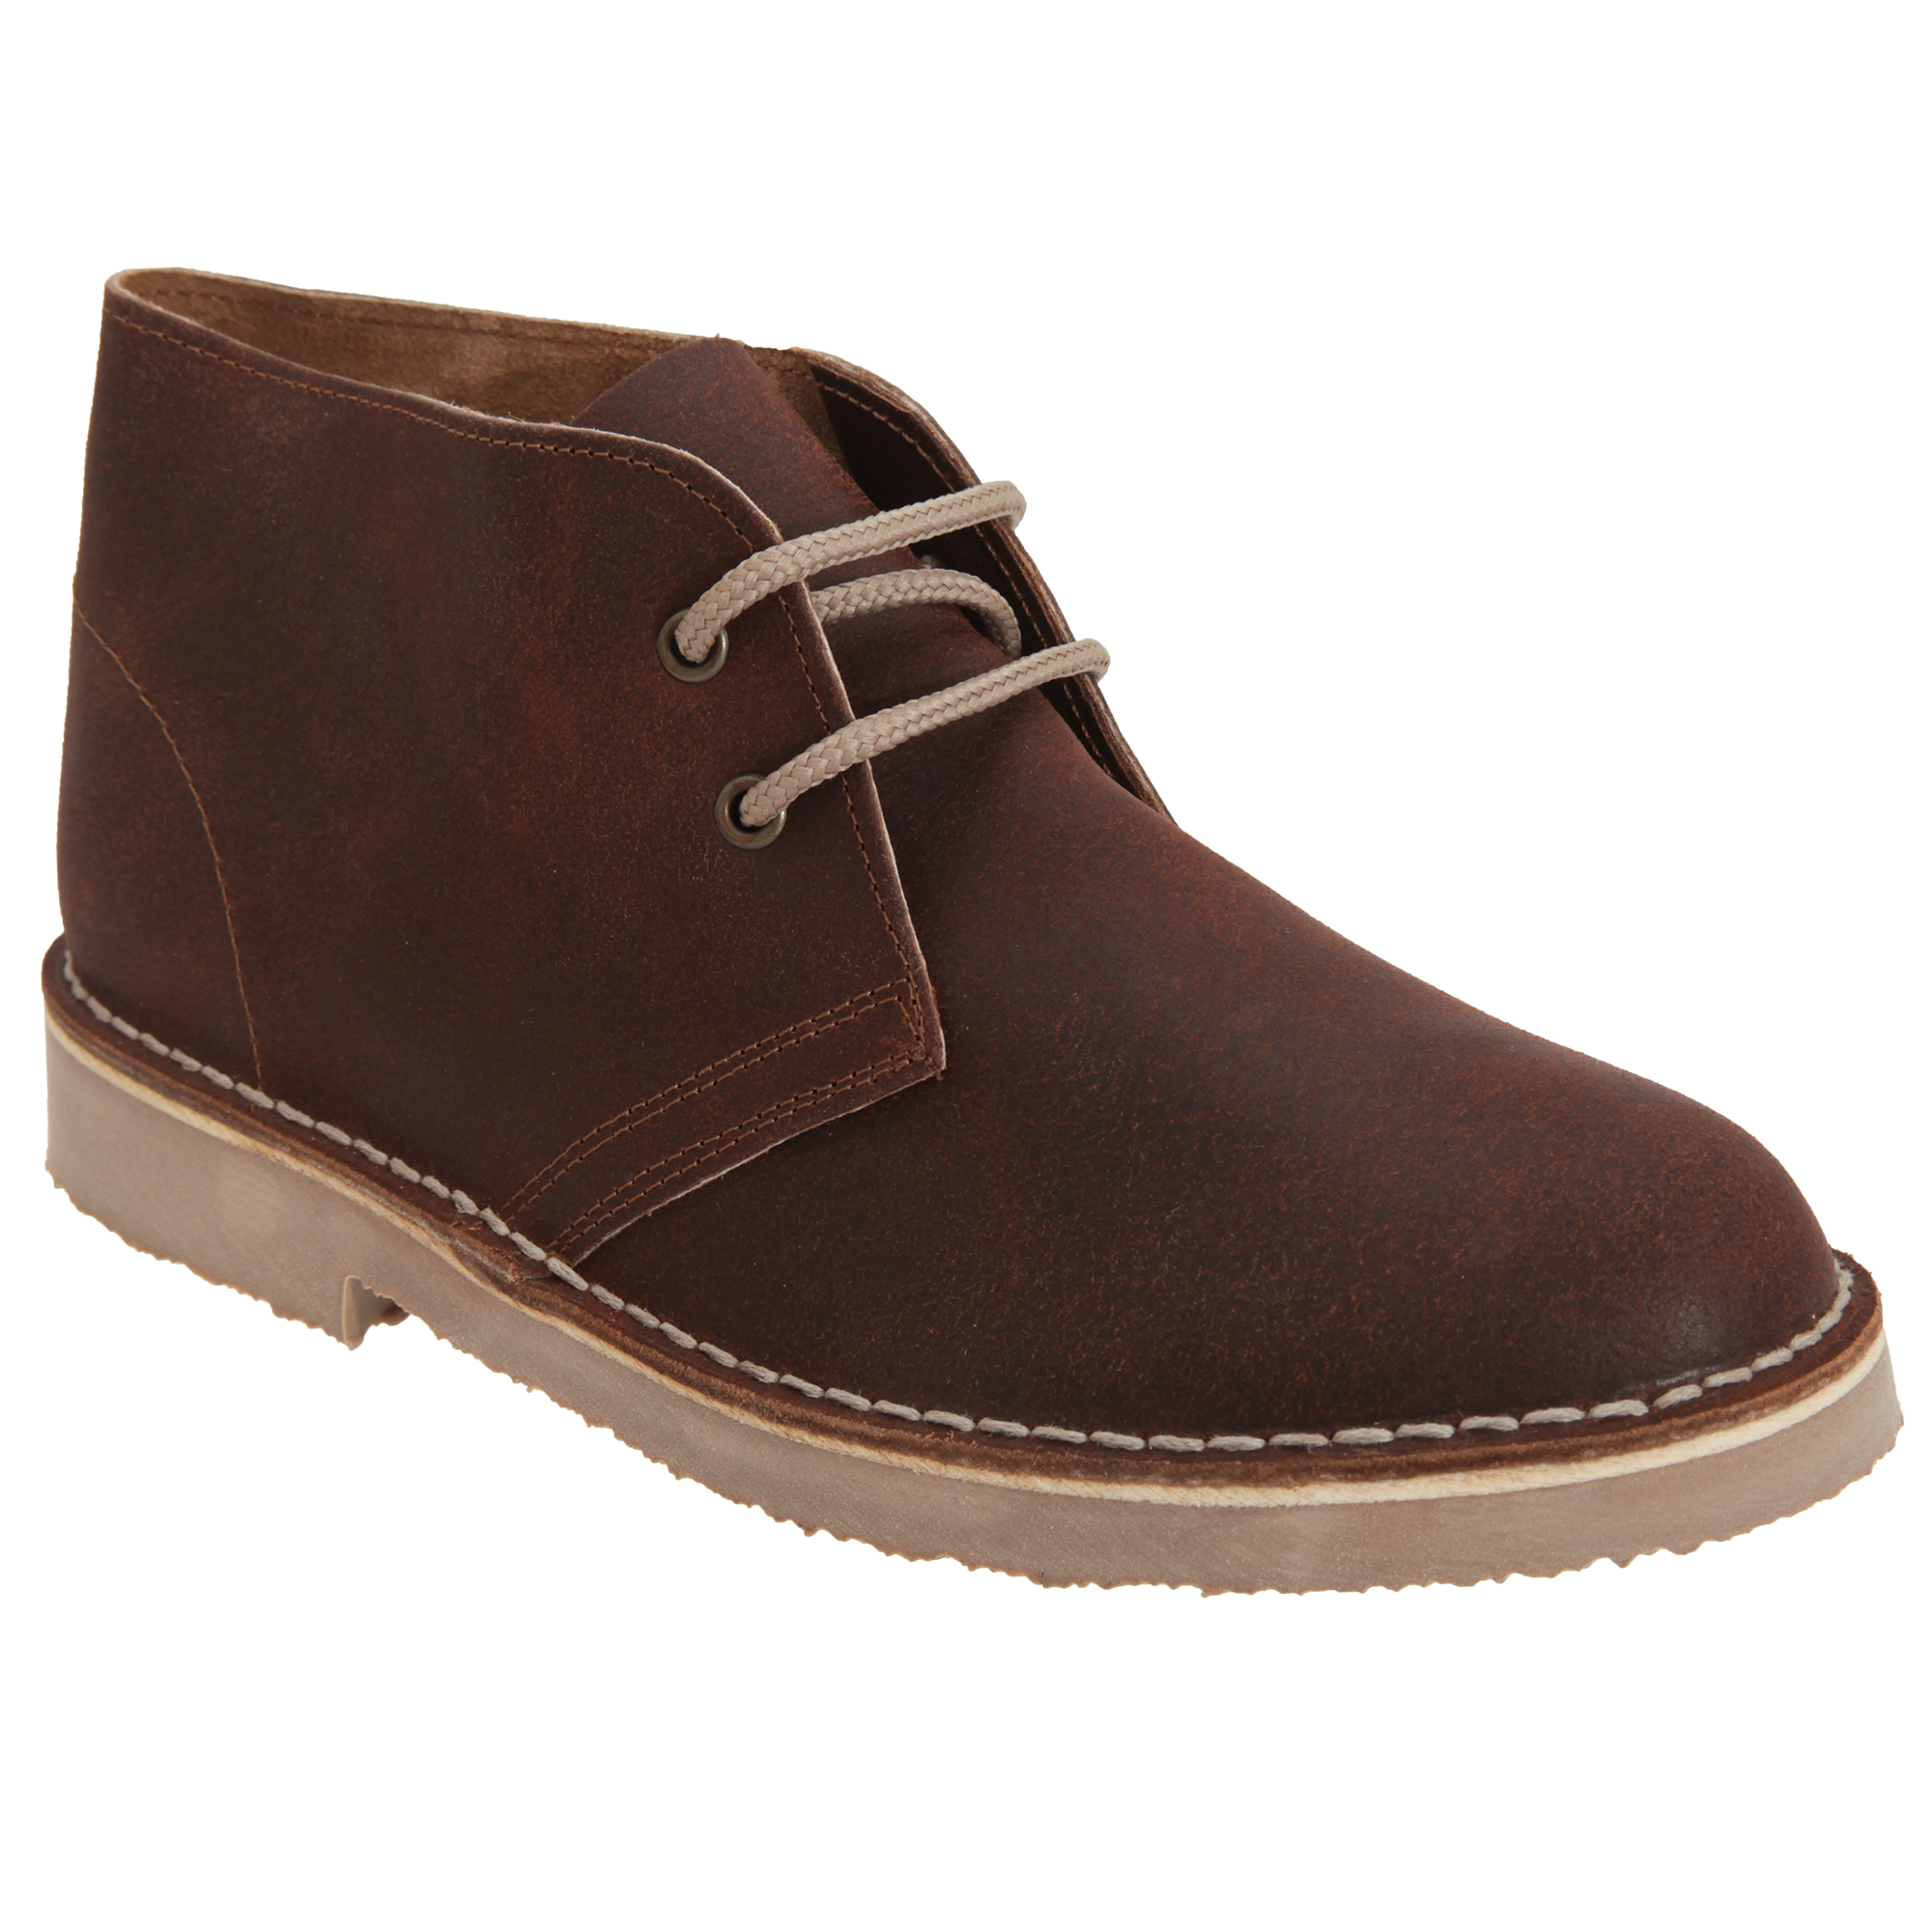 Roamers Adults Unisex Unlined Distressed Leather Desert Boots (10 UK) (Brown)